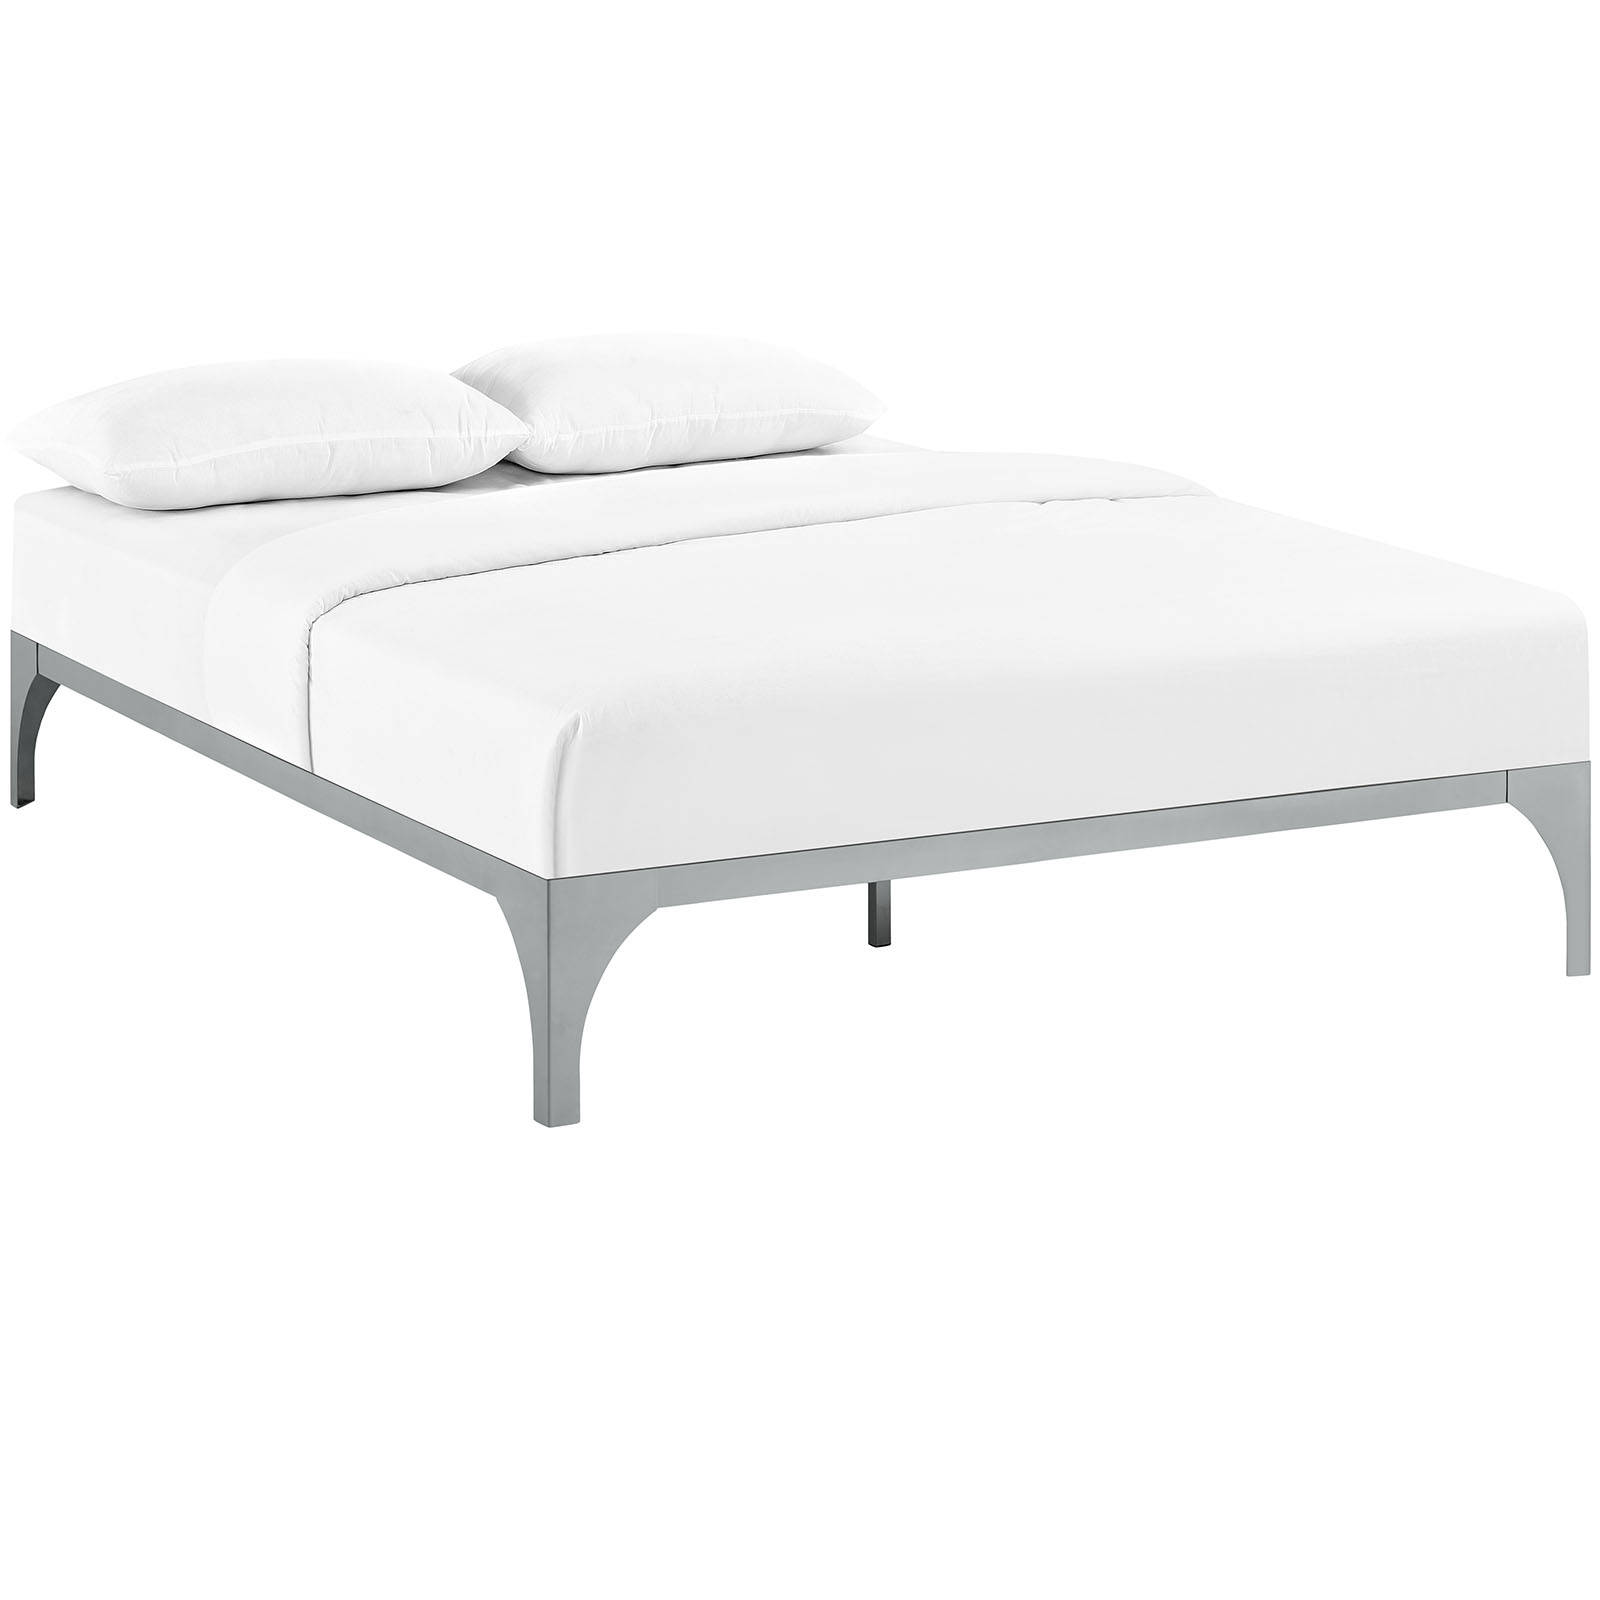 cb341a517f Modway Furniture Ollie Gray Queen Bed Frame